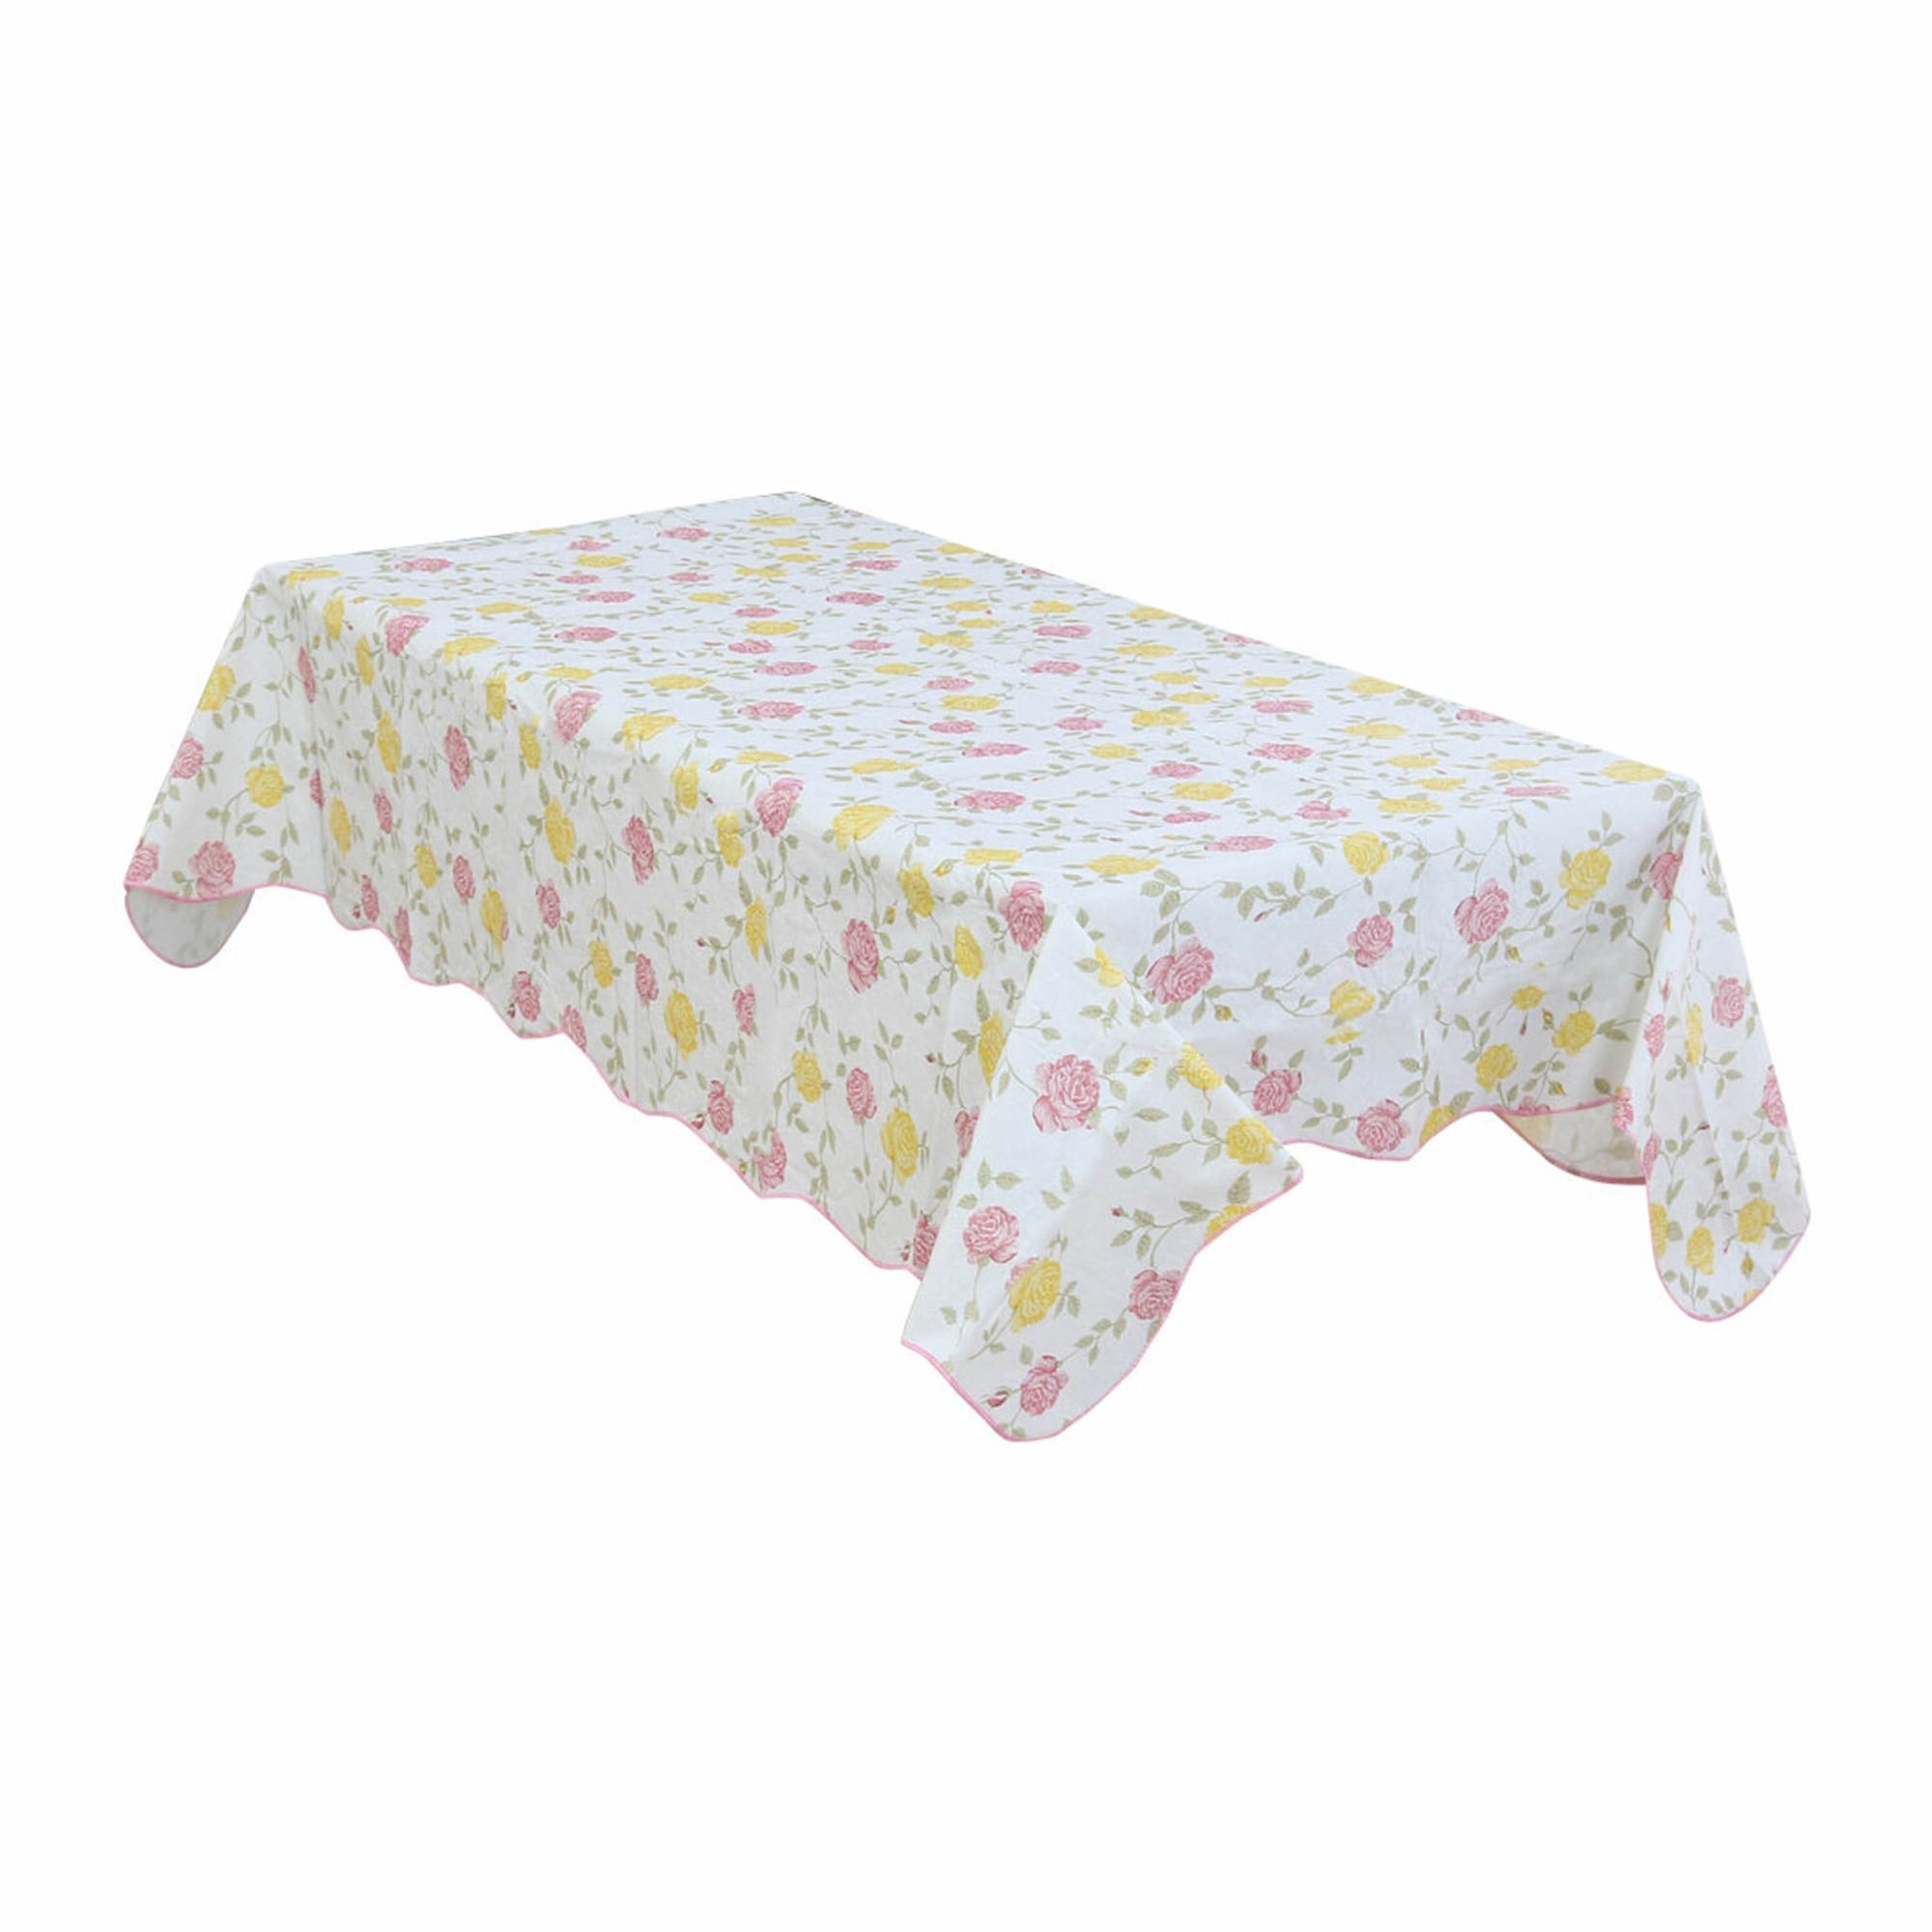 Home Picnic Bi-color Rose Pattern Water Resistant Oil-proof Tablecloth Table Cloth Cover 41 x 60 Inch